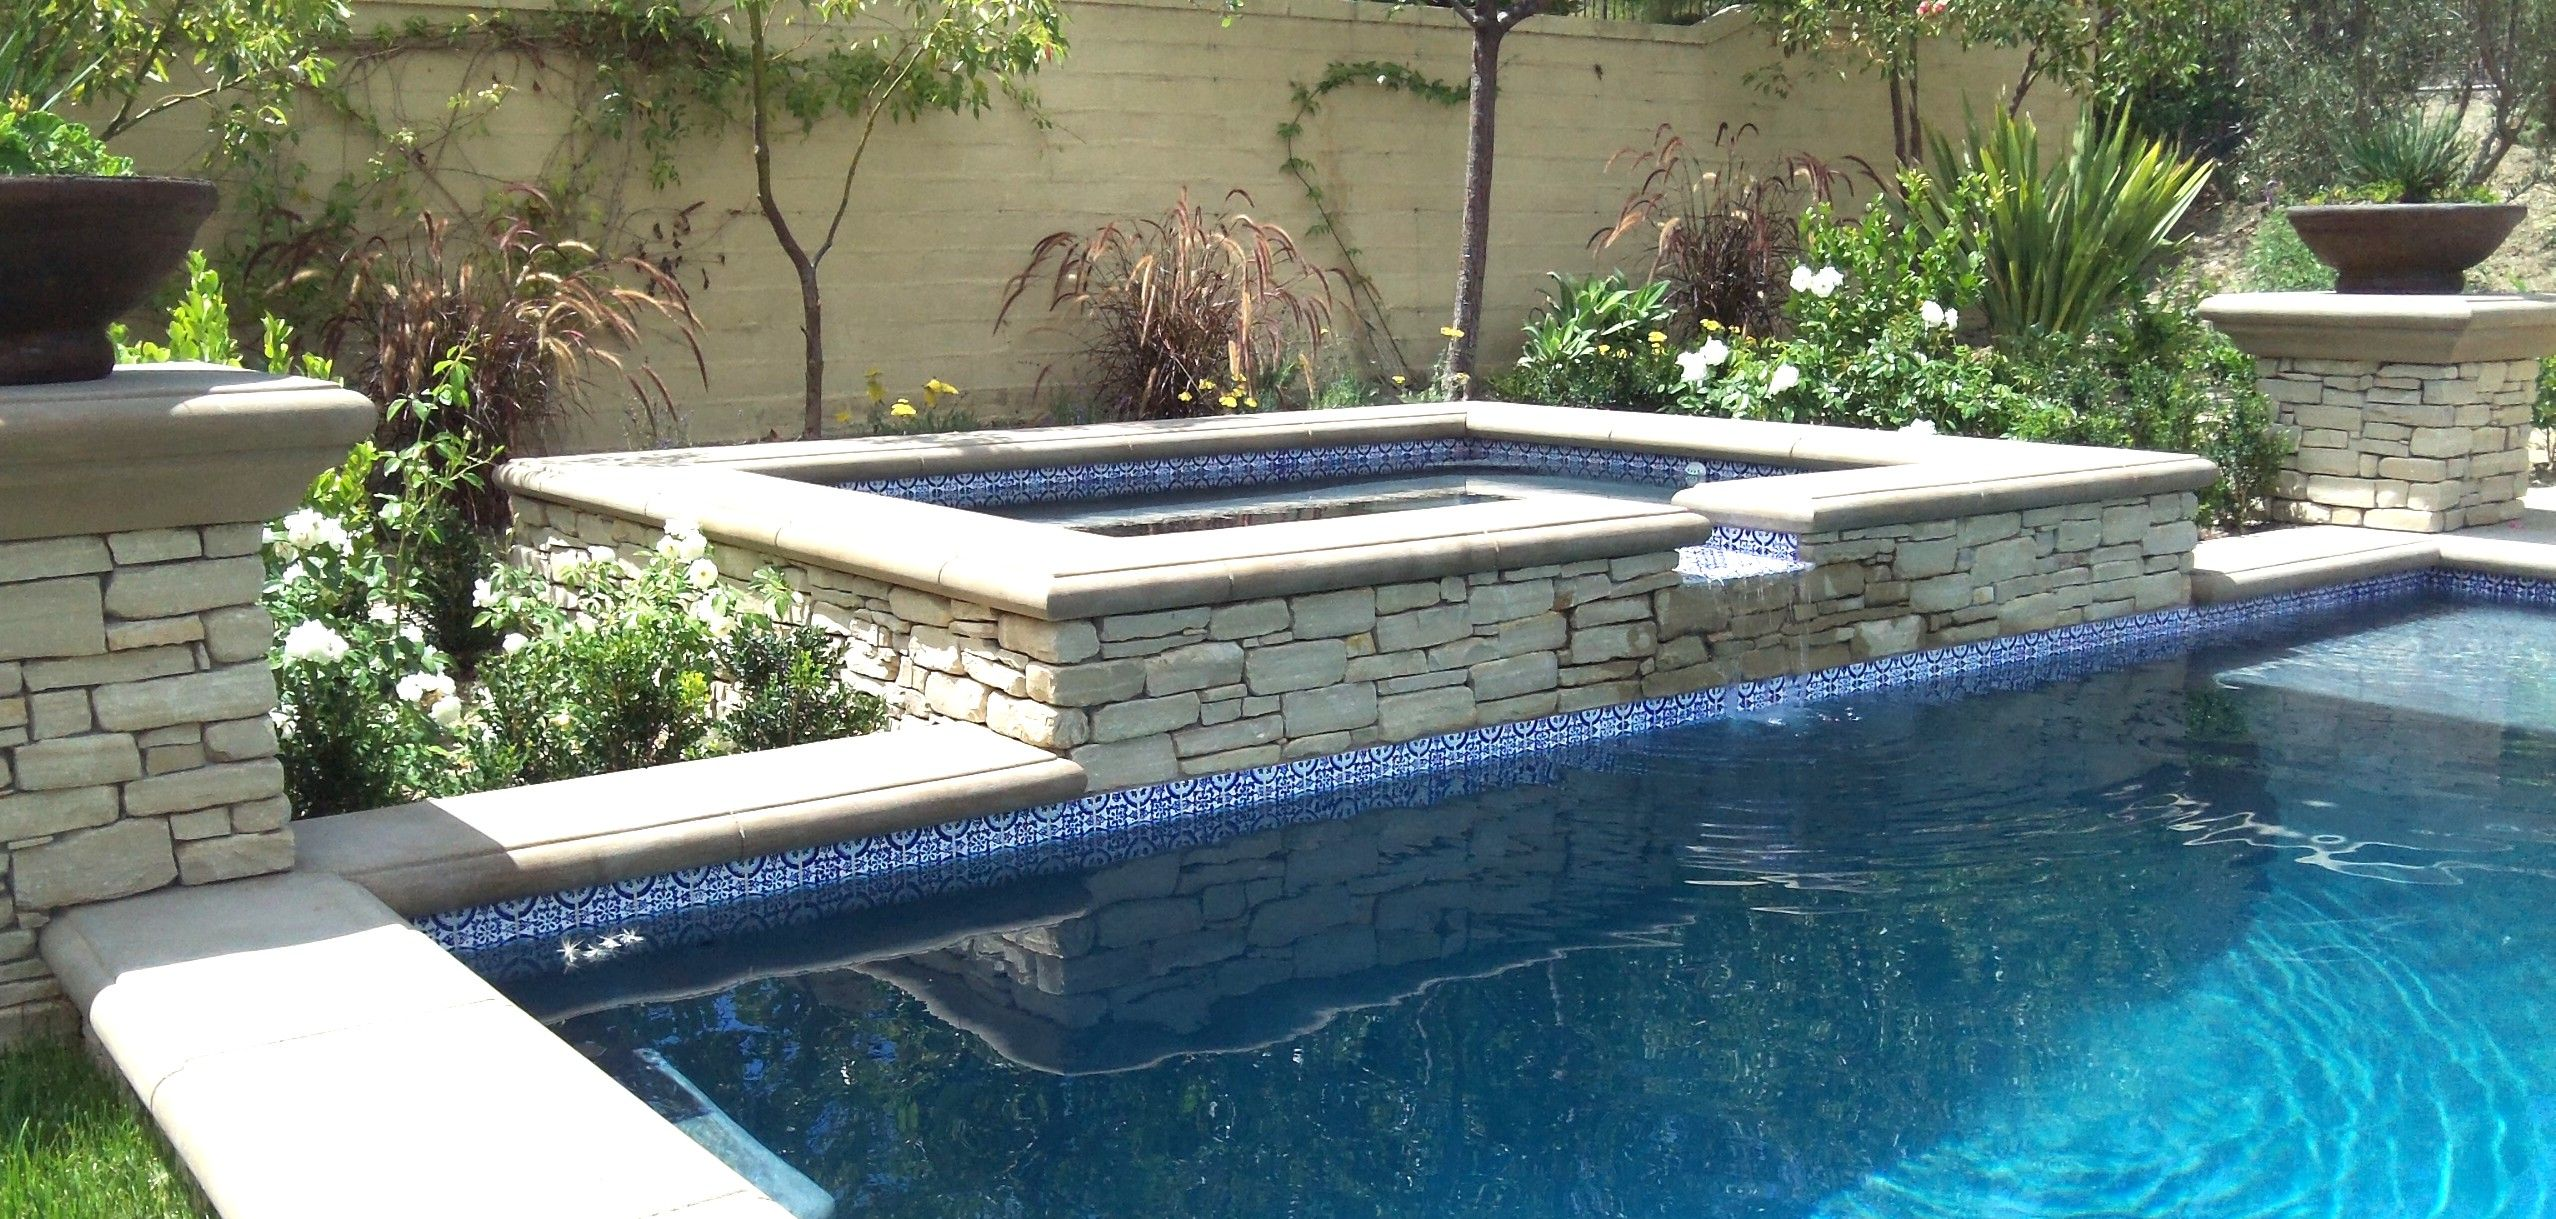 Pool tile designs pool water fountain design ideas small for Pool tile designs